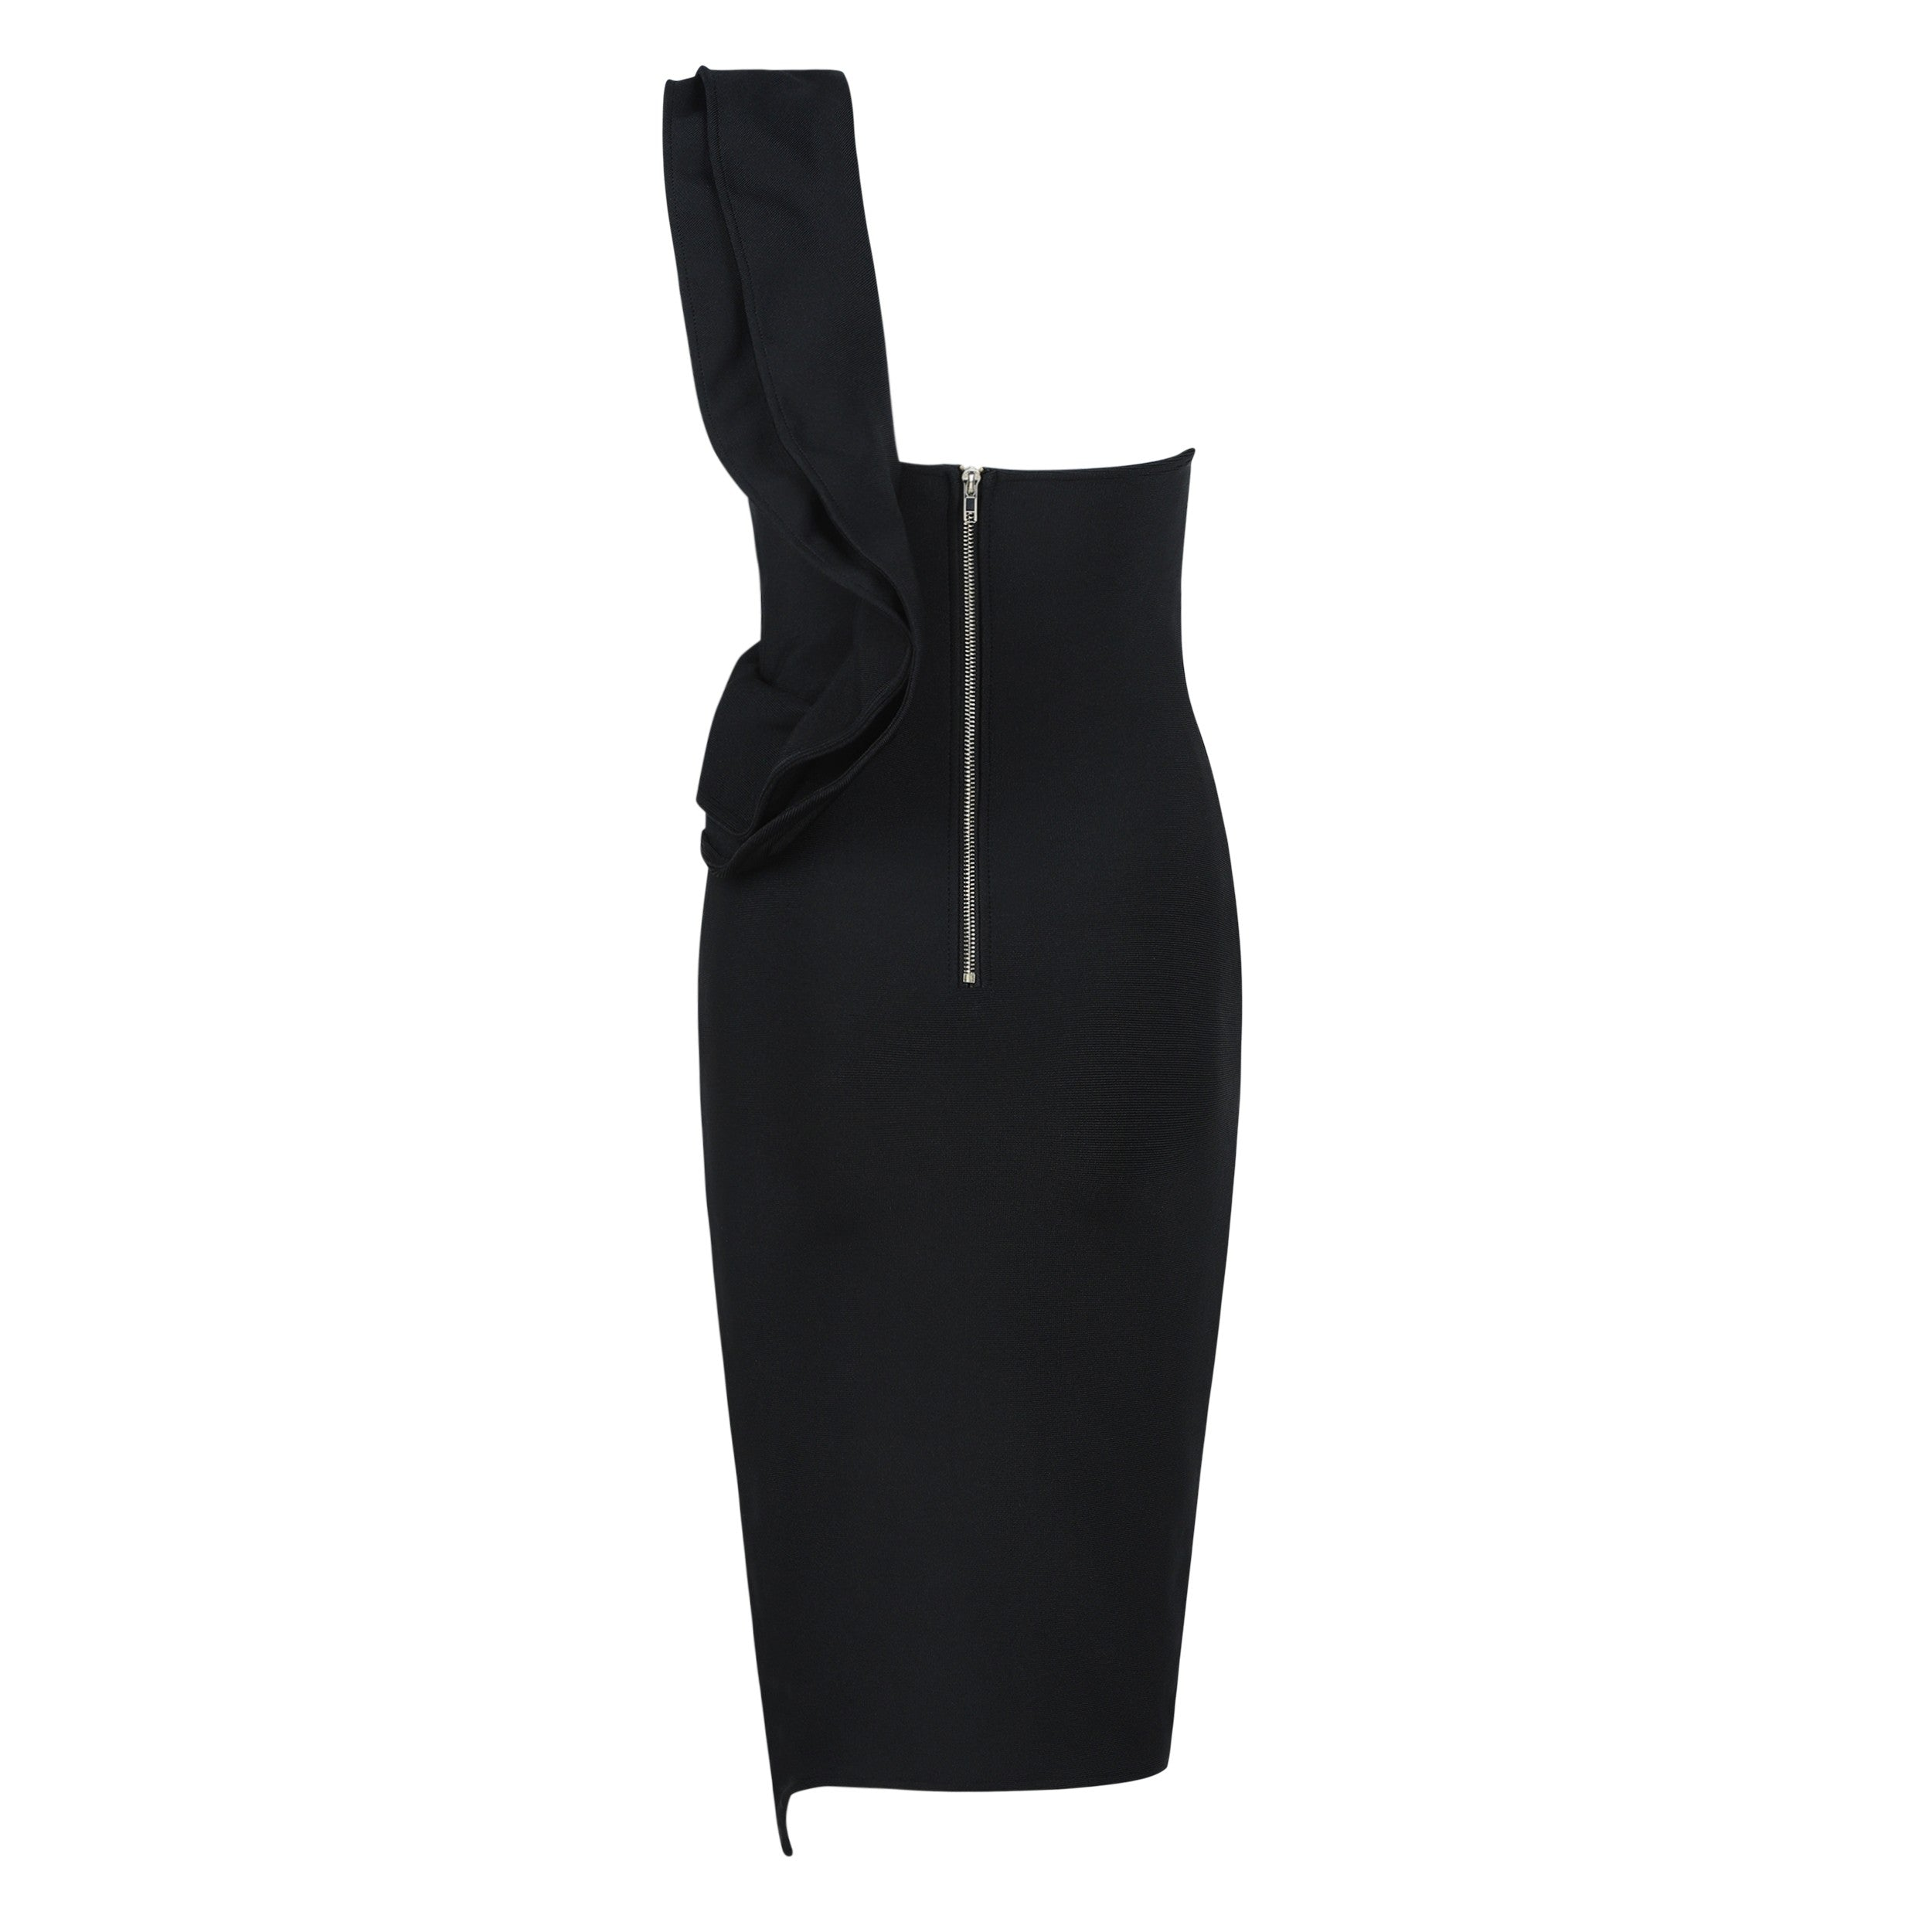 MATEA Black One Shoulder Sleeveless Over Knee Side Slitted Back Zipped Evening Bandage Dress